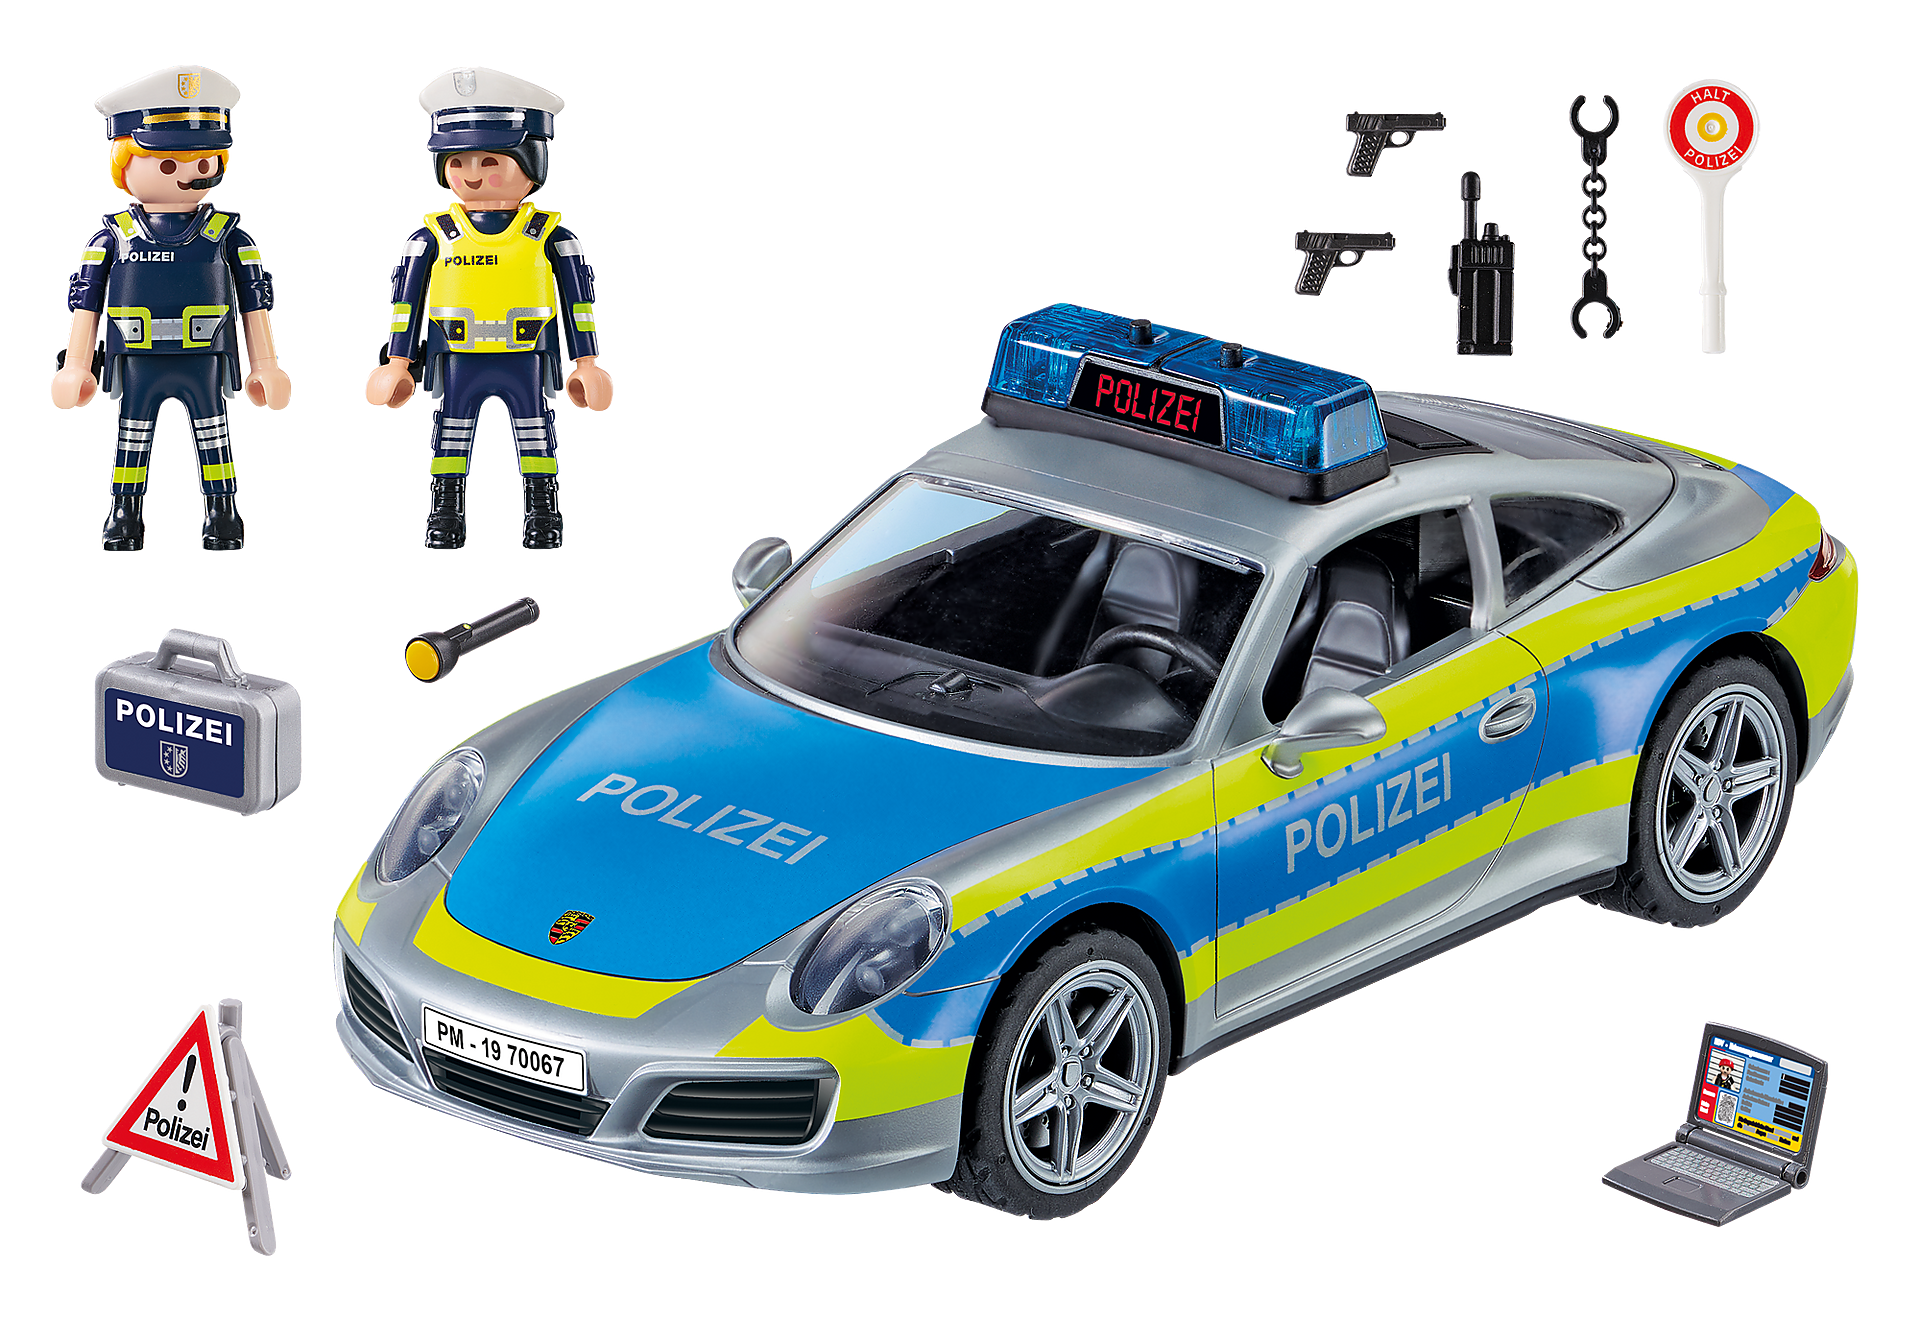 http://media.playmobil.com/i/playmobil/70067_product_box_back/Porsche 911 Carrera 4S Polizei